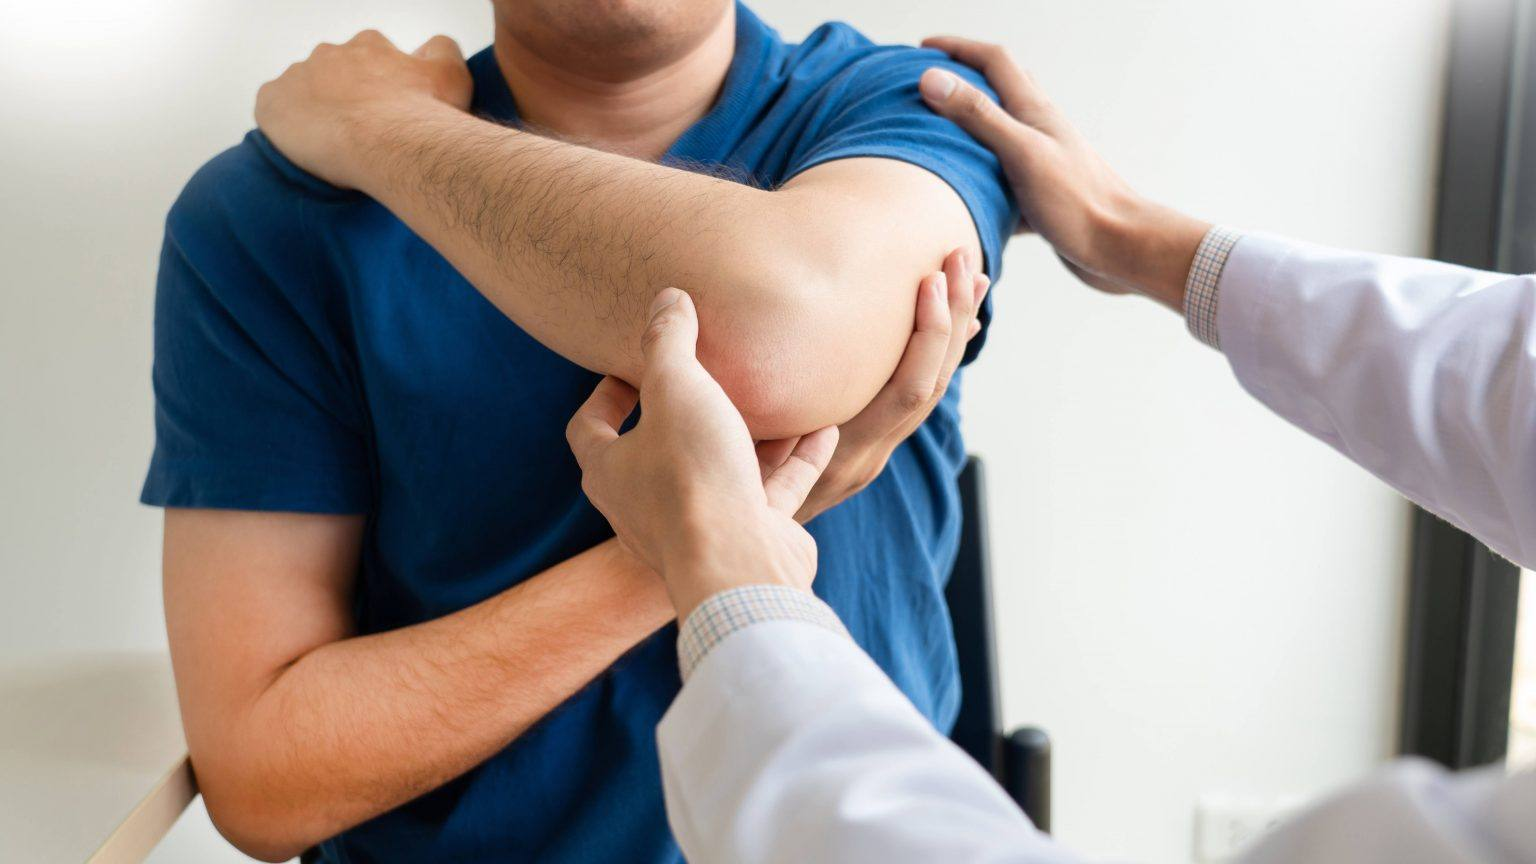 a-white-man-in-a-blue-shirt-holding-up-his-sore-left-arm-in-pain-perhaps-an-injured-shoulder-or-elbow-with-a-medical-person-examining-the-injury-16x9-1-1536x864